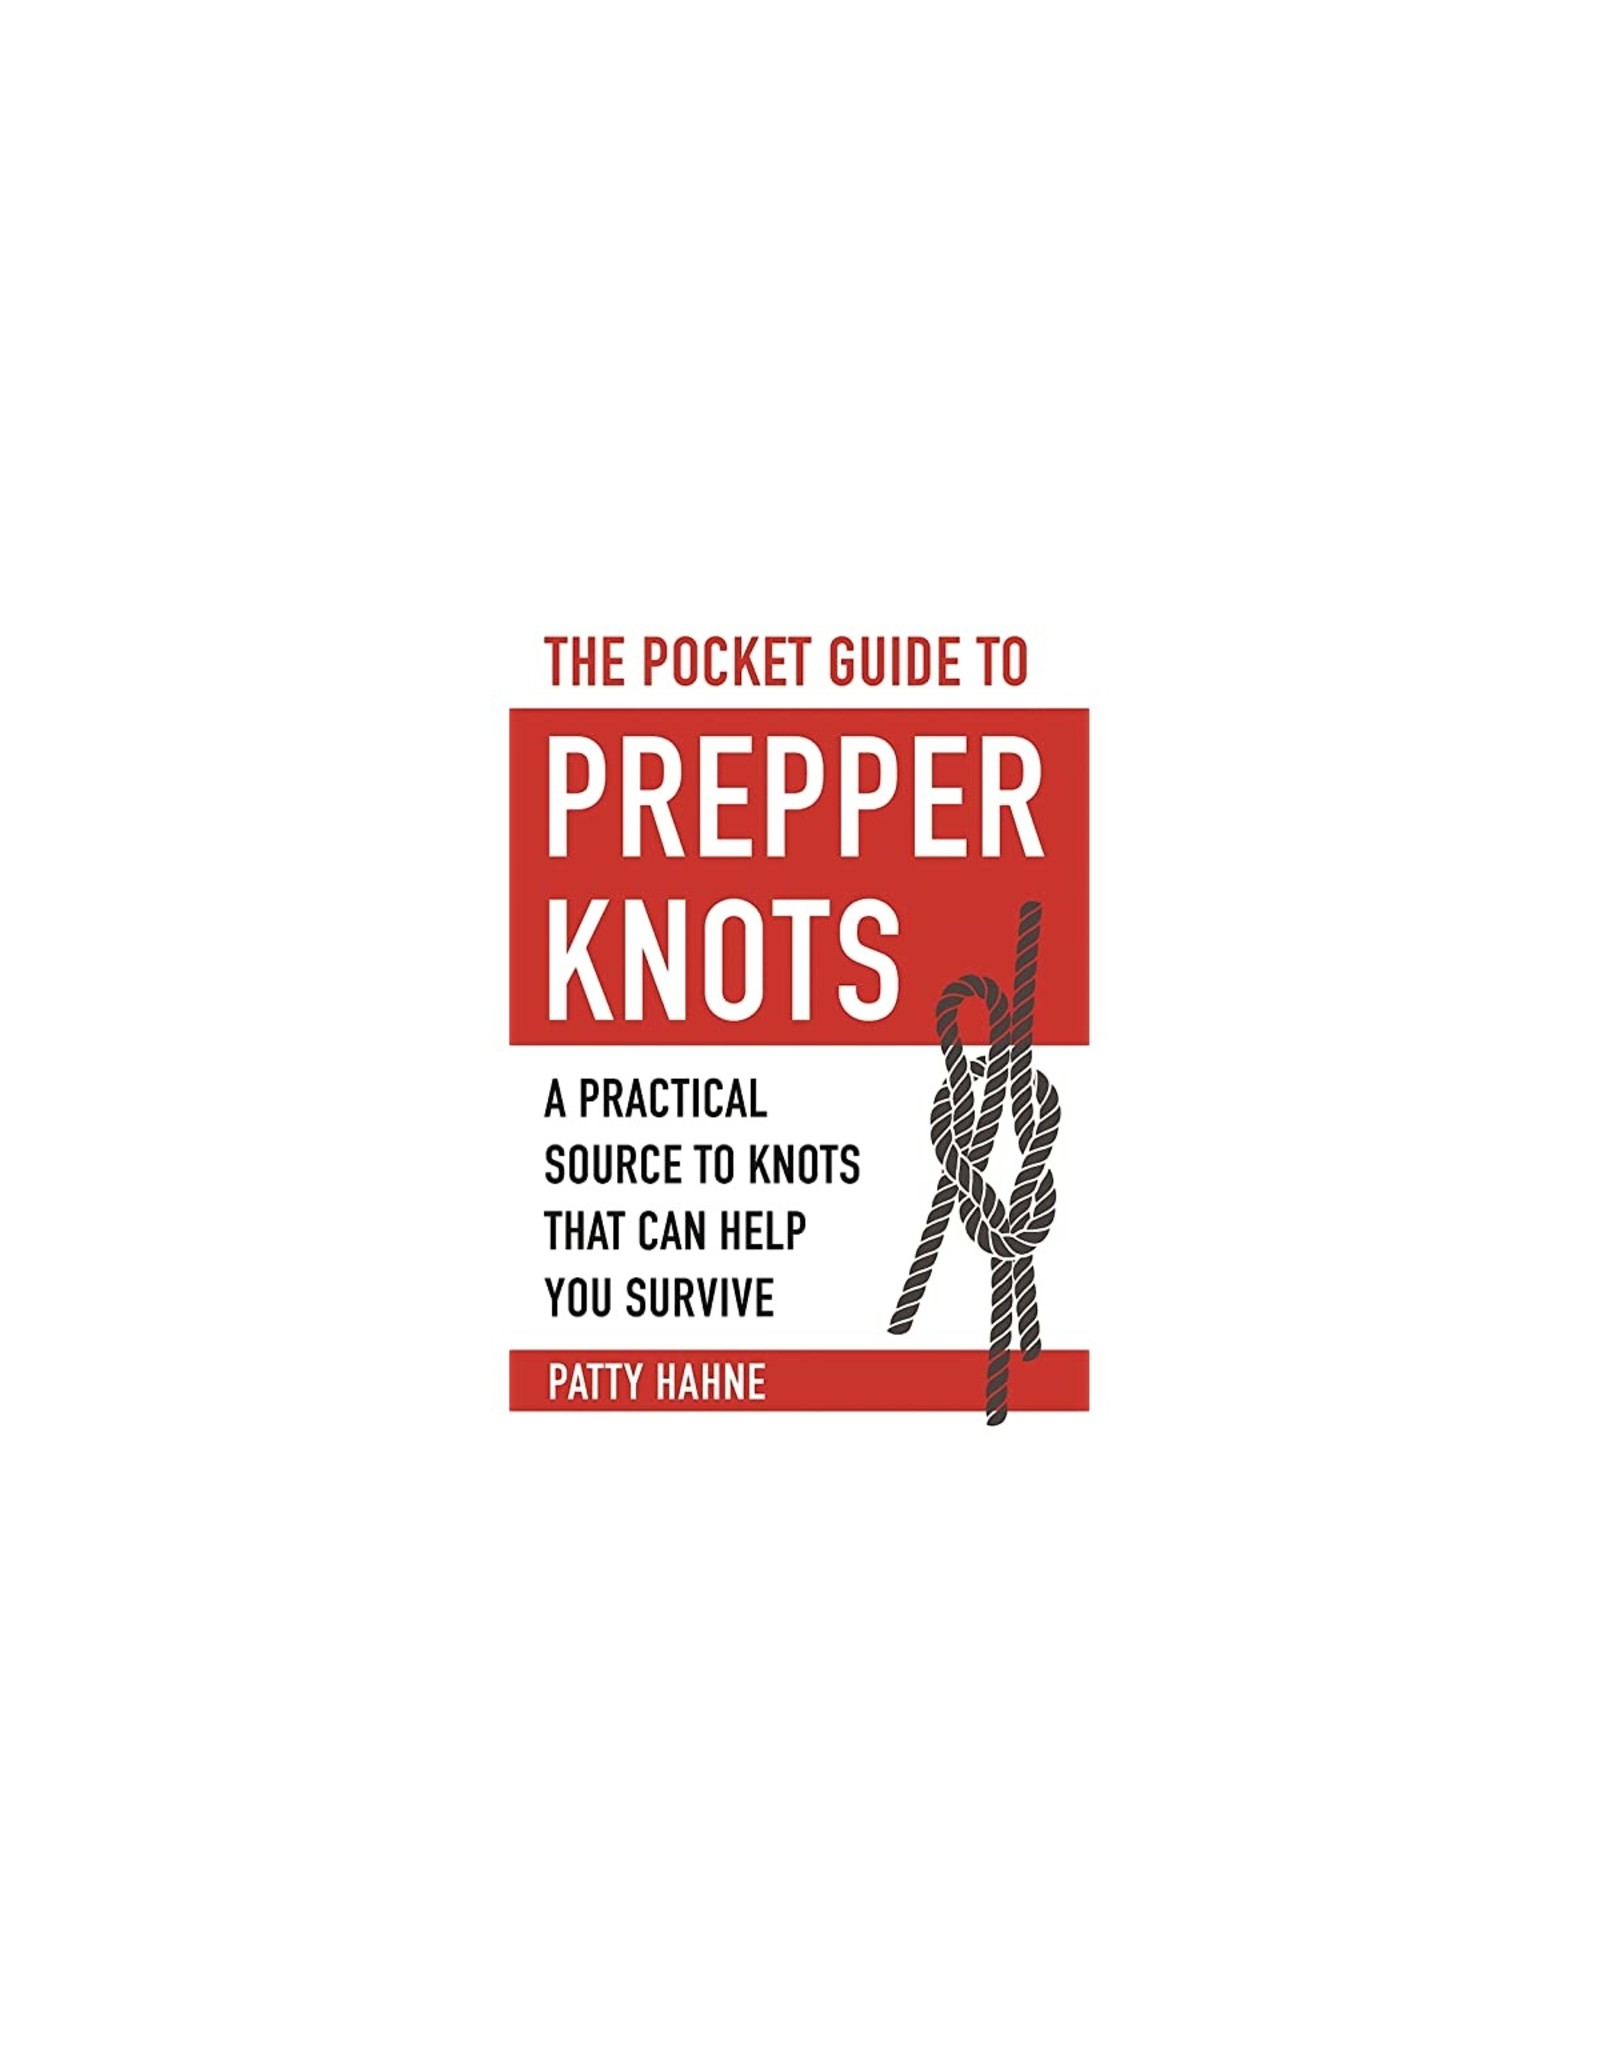 BLUE RIDGE KNIVES THE POCKET GUIDE TO PREPPER KNOTS